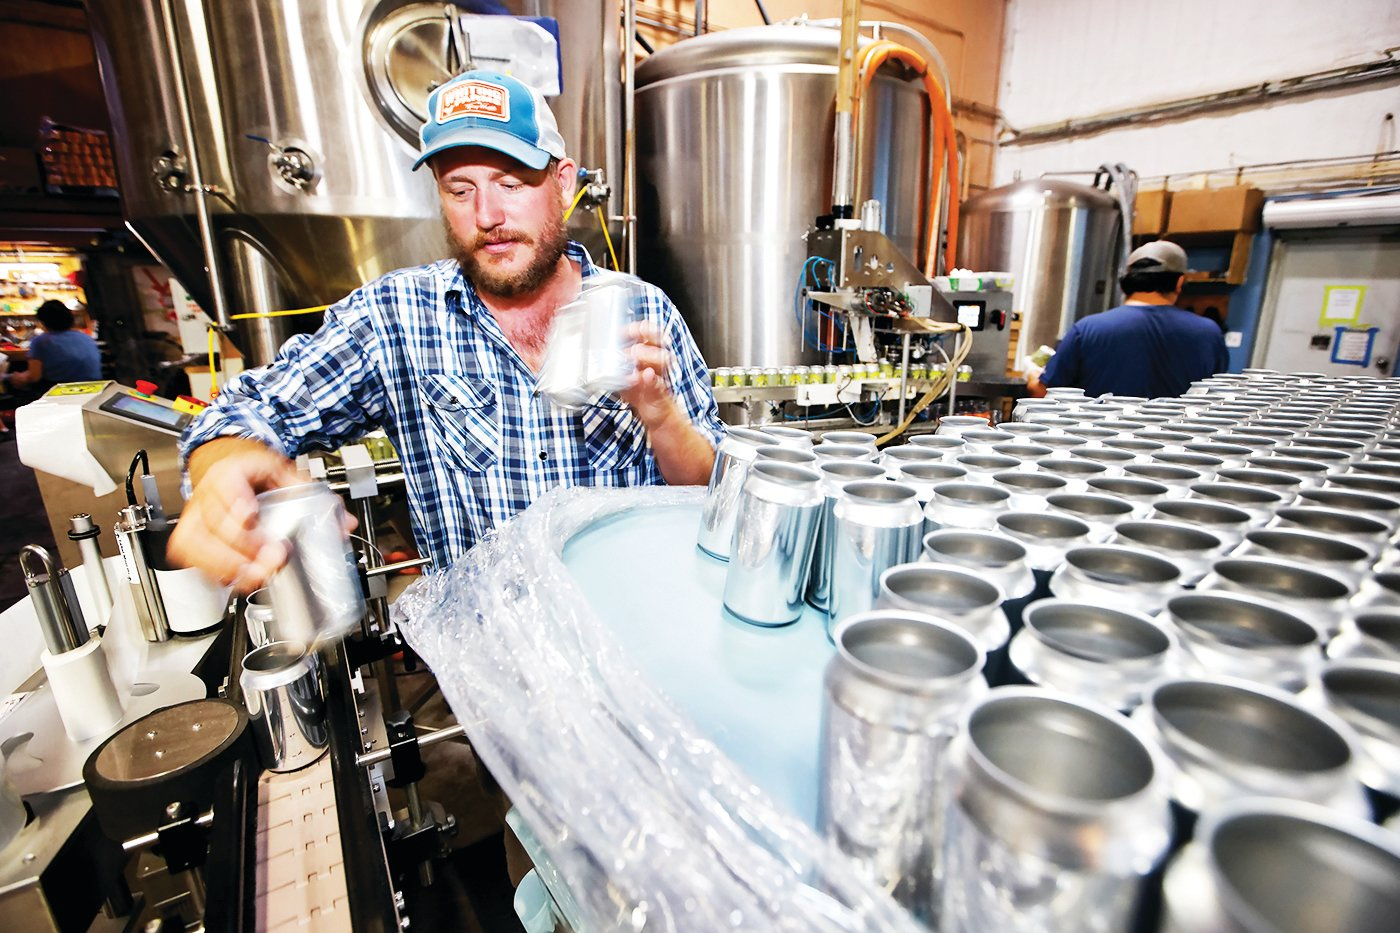 Head Brewer Danny Wilson labels blank cans with Dirty Hippy stickers at Palisade Brewing Company in Palisade, Colo., on July 28. Because of an international shortage of aluminum containers, Palisade Brewing has been unable to purchase printed cans blank cans individually wrapped with labels.